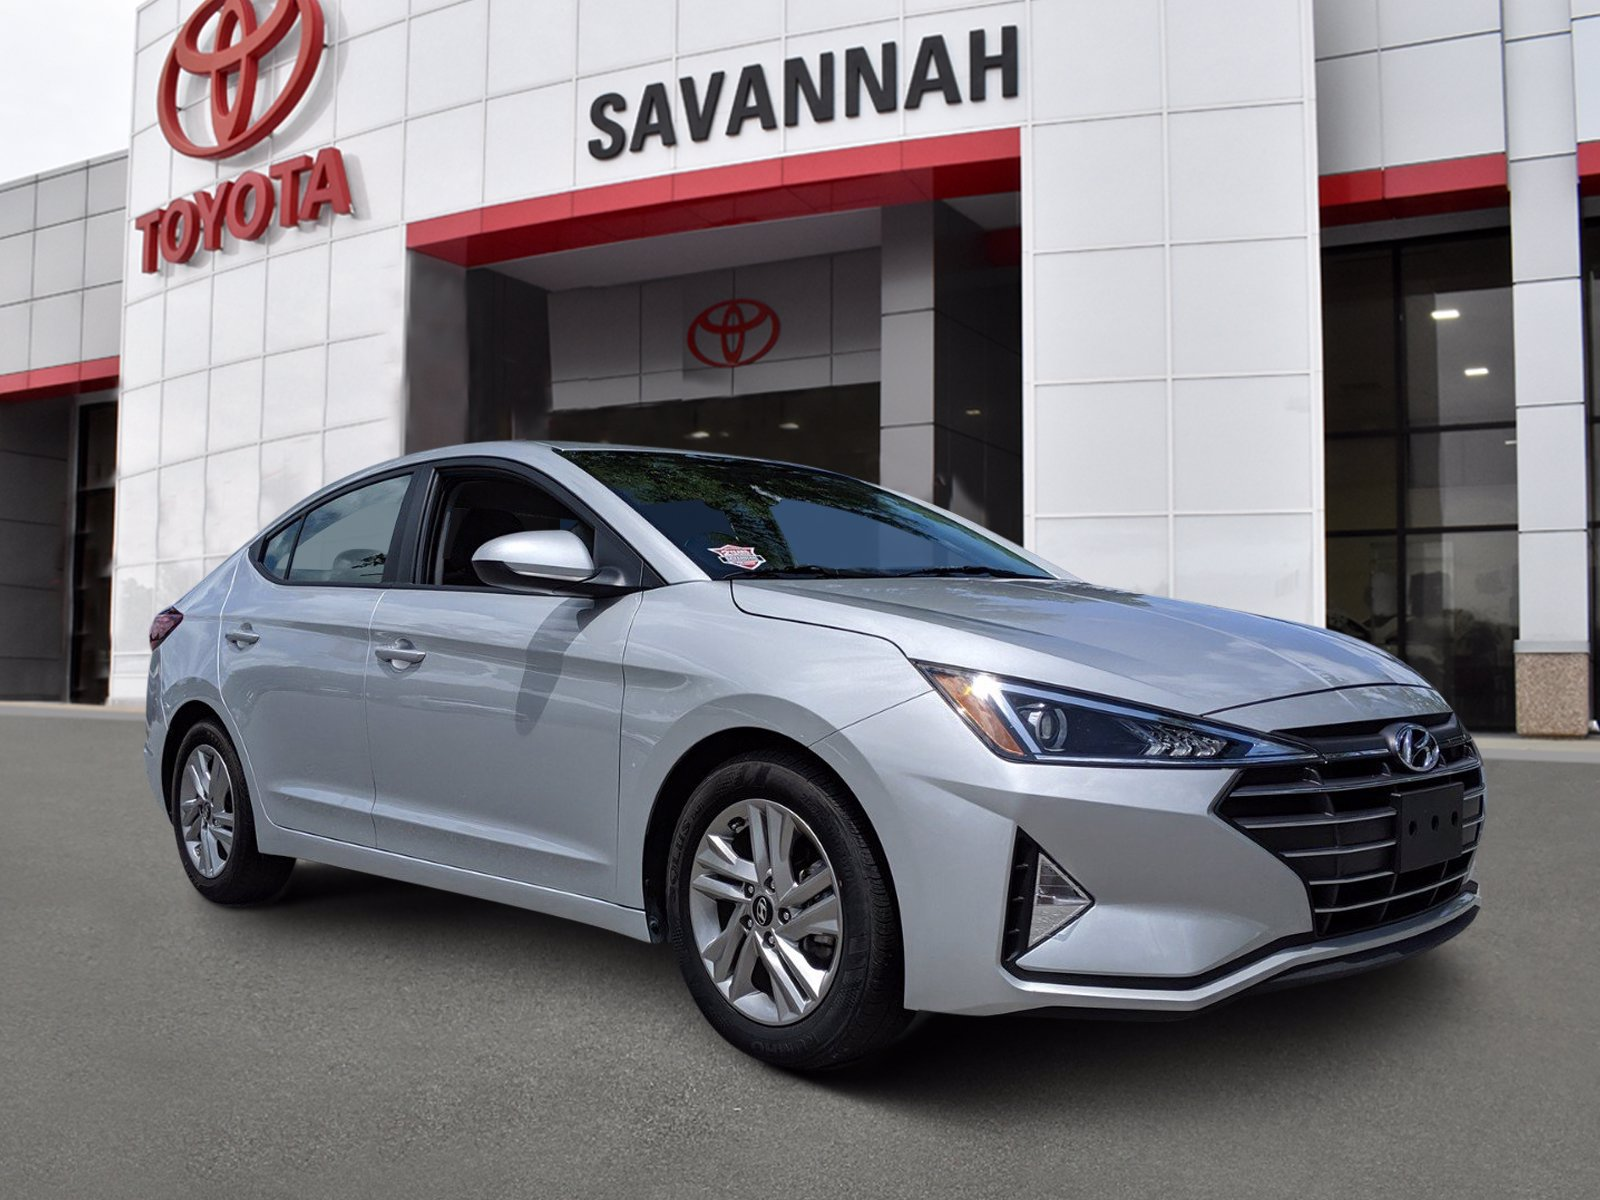 pre owned 2019 hyundai elantra sel 4dr car in savannah 14620p savannah toyota savannah toyota